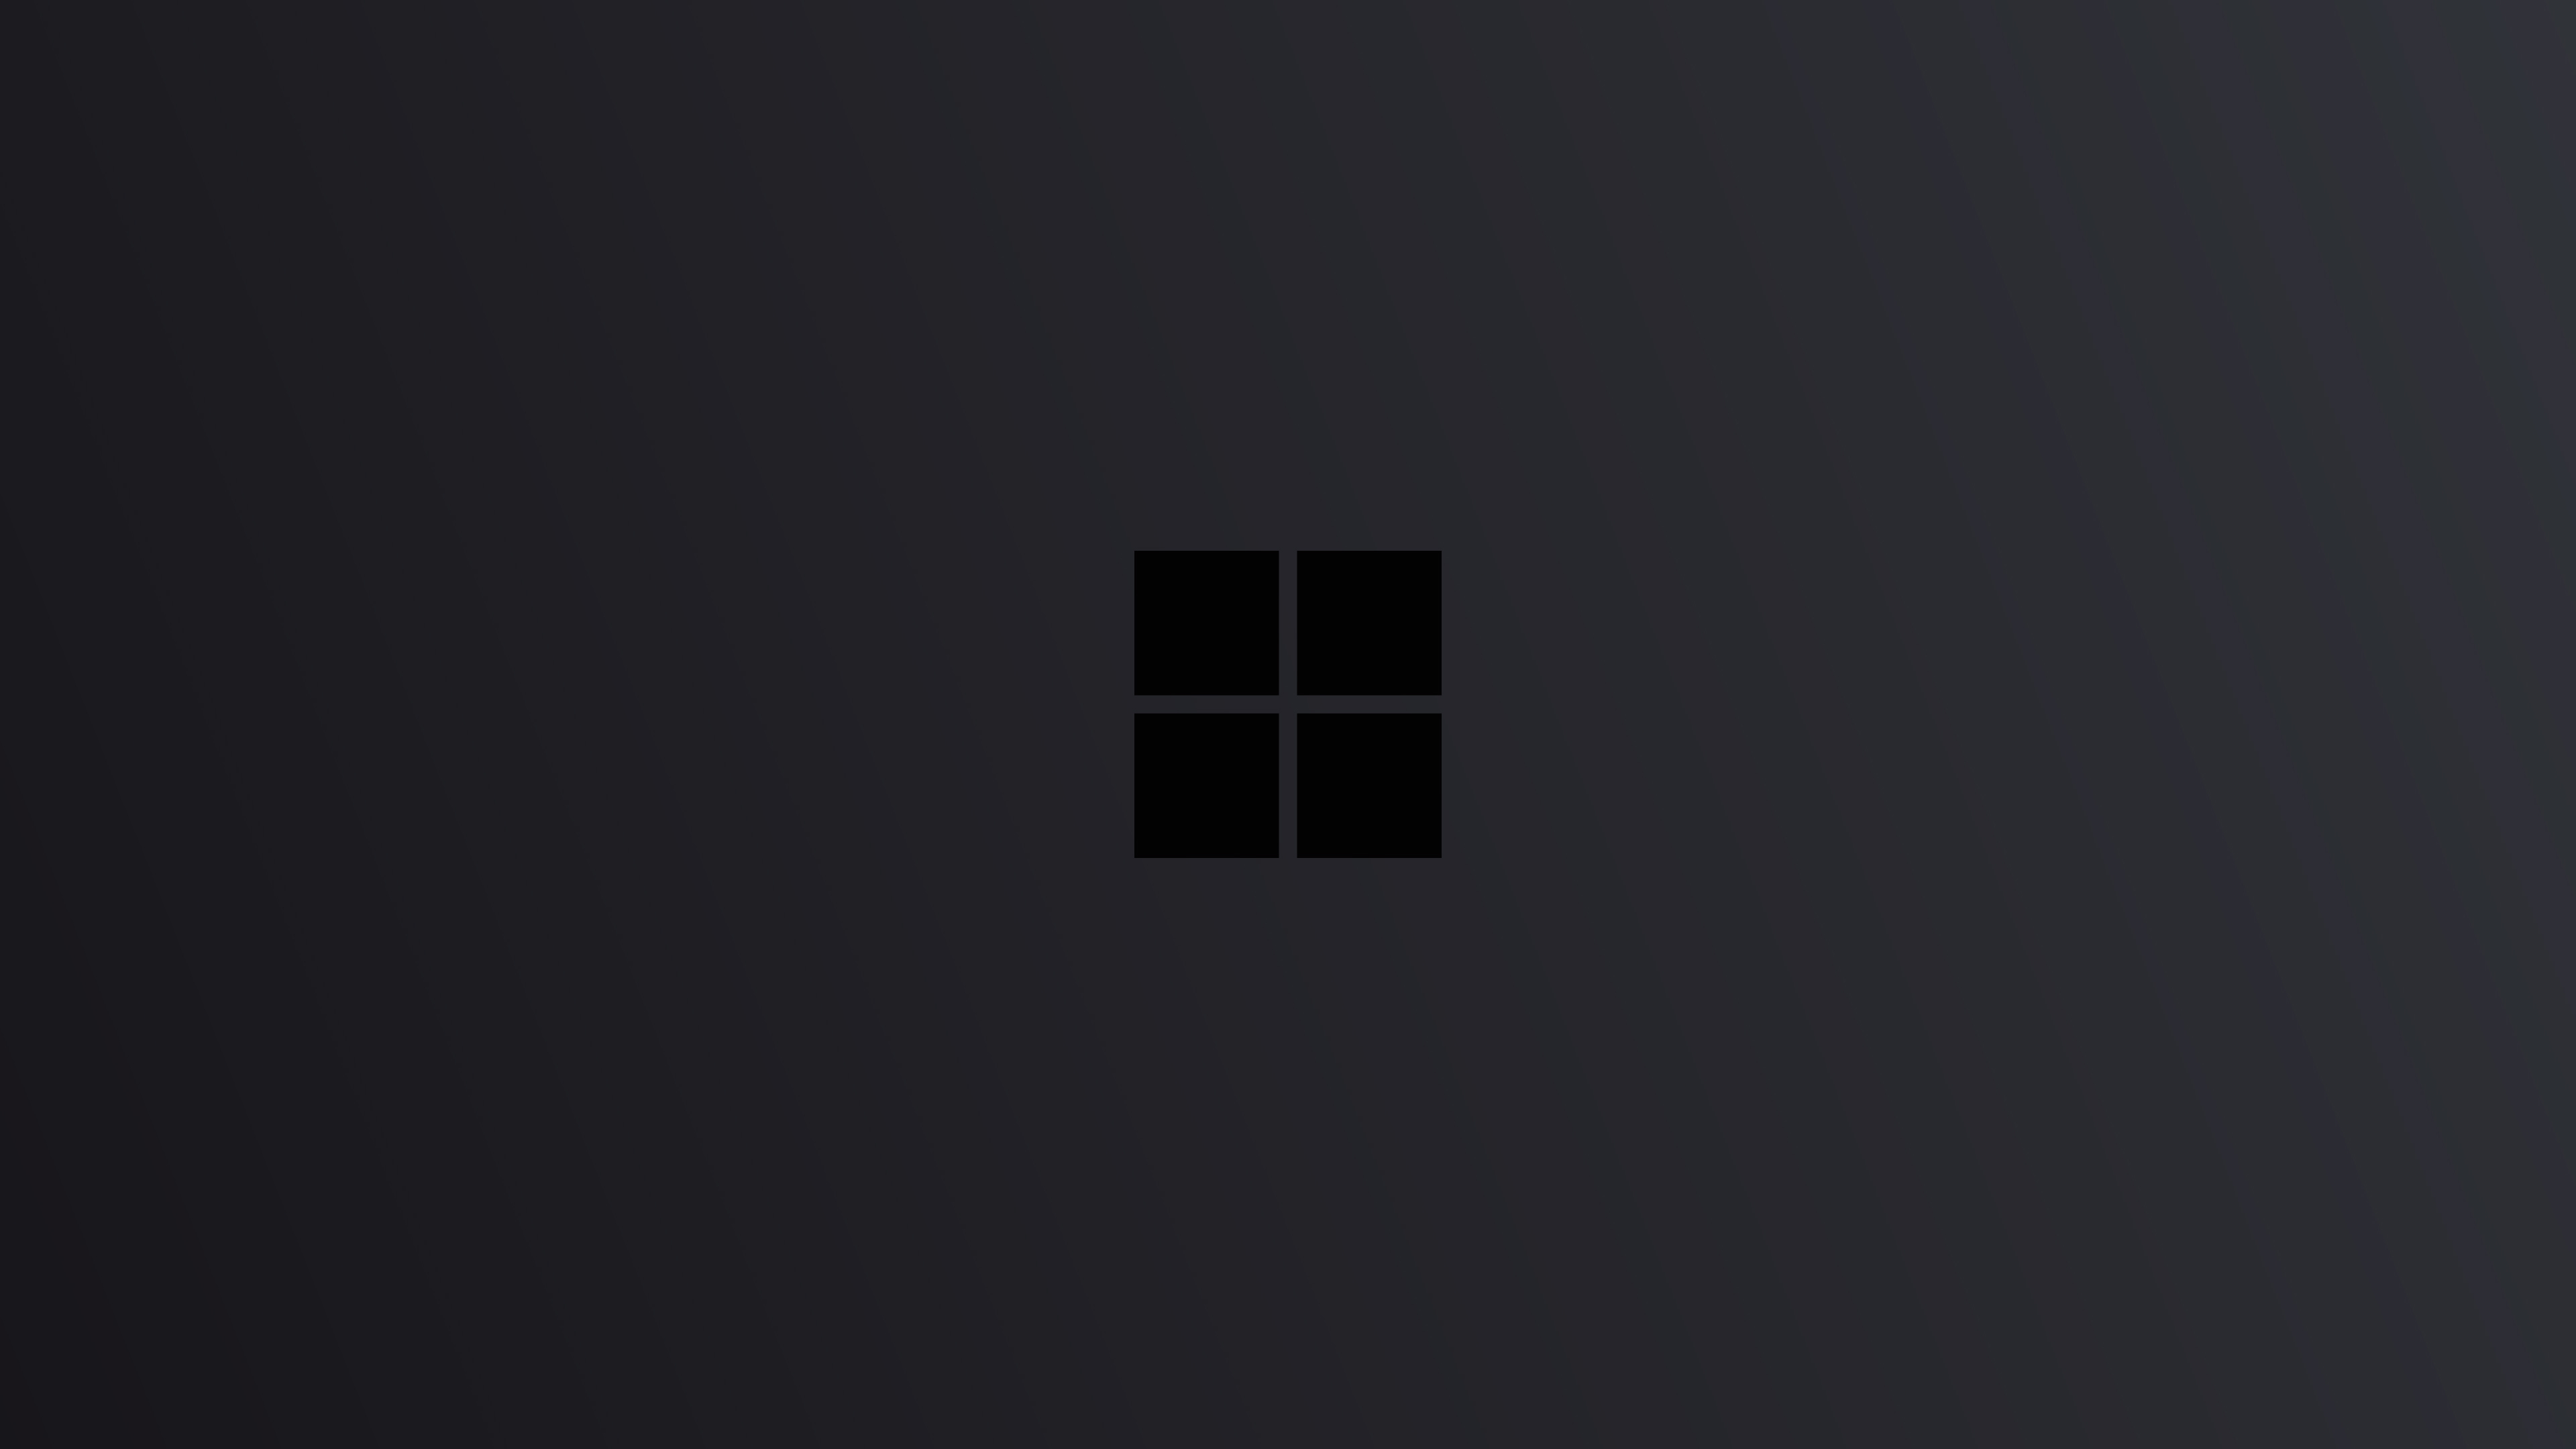 Dark 4k Wallpaper Windows 10